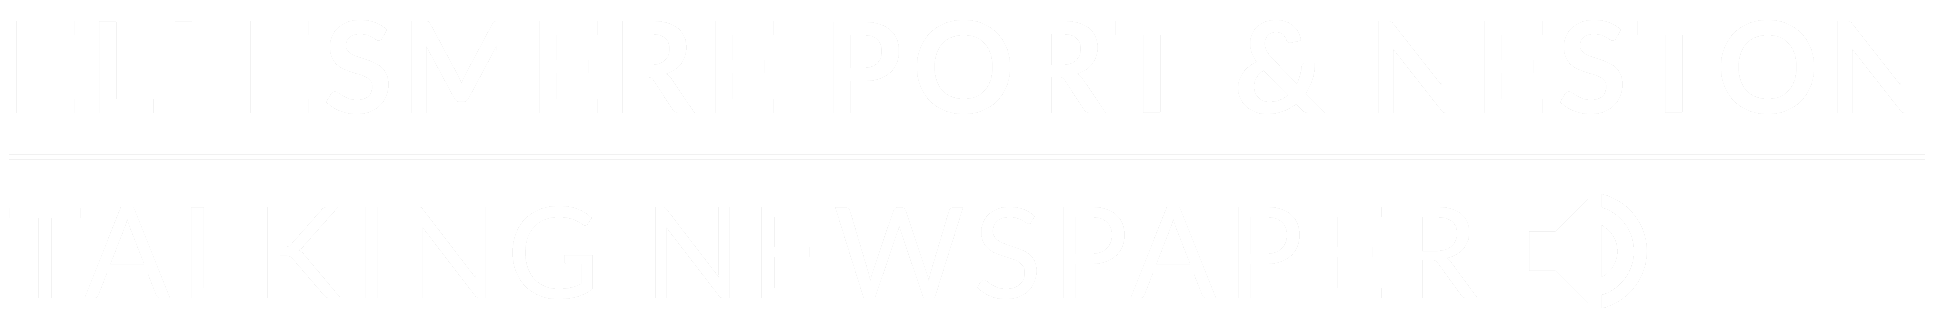 EP&N Talking Newspaper Logo White